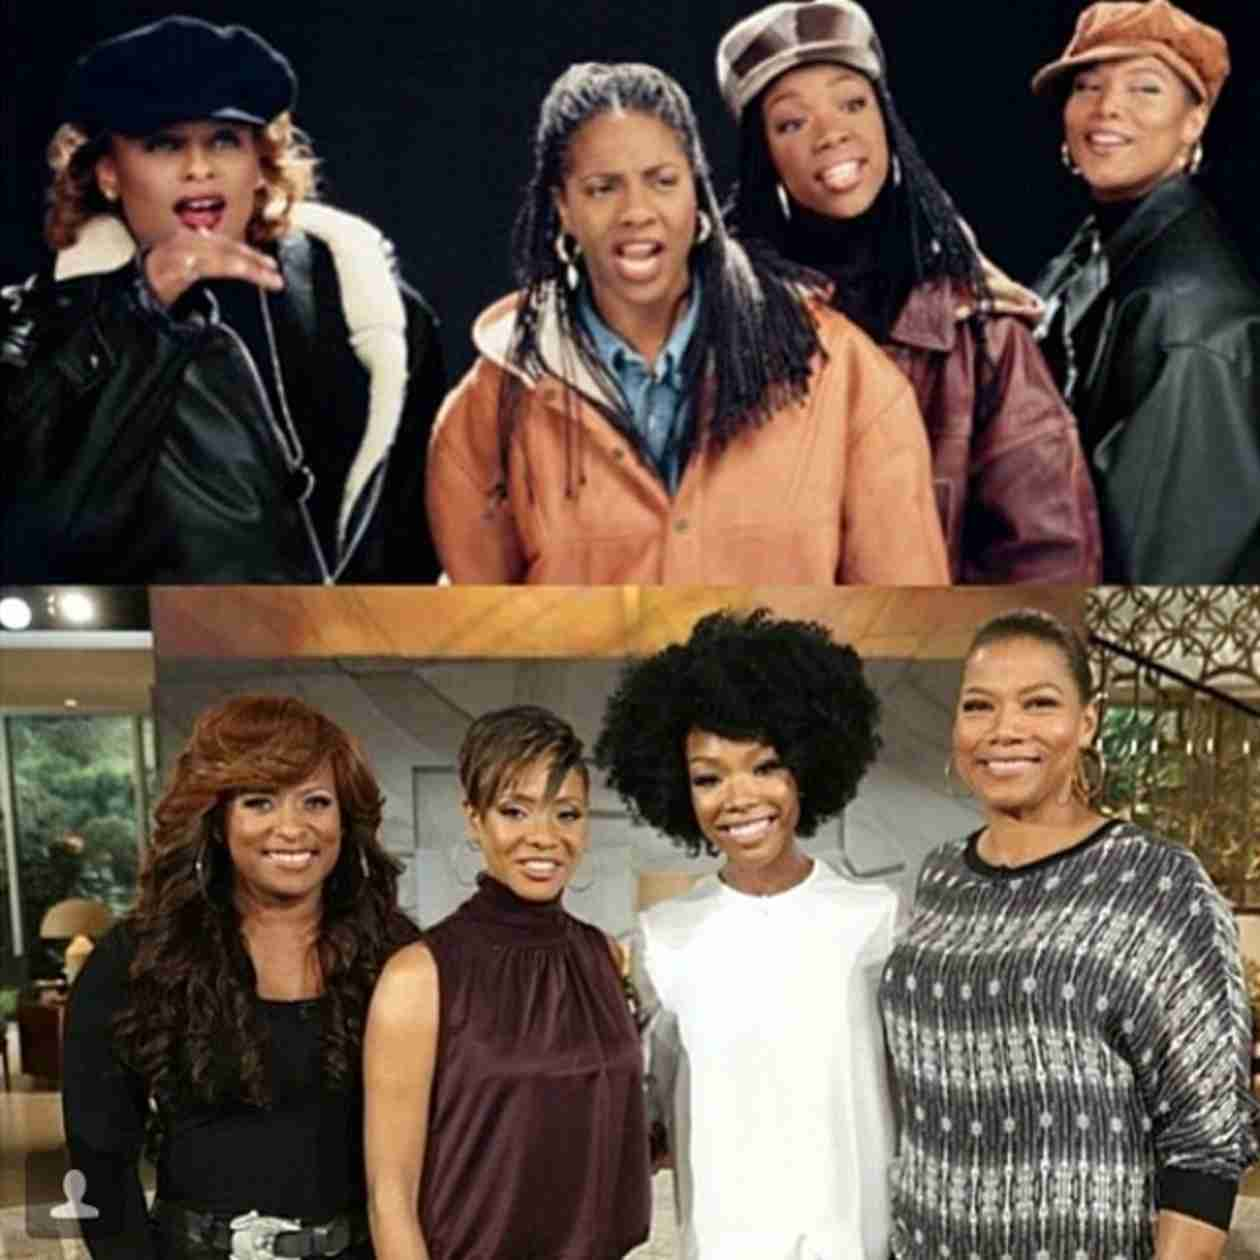 Brandy Reunites With MC Lyte, YoYo, and Queen Latifah 20 Years After Single (VIDEOS)